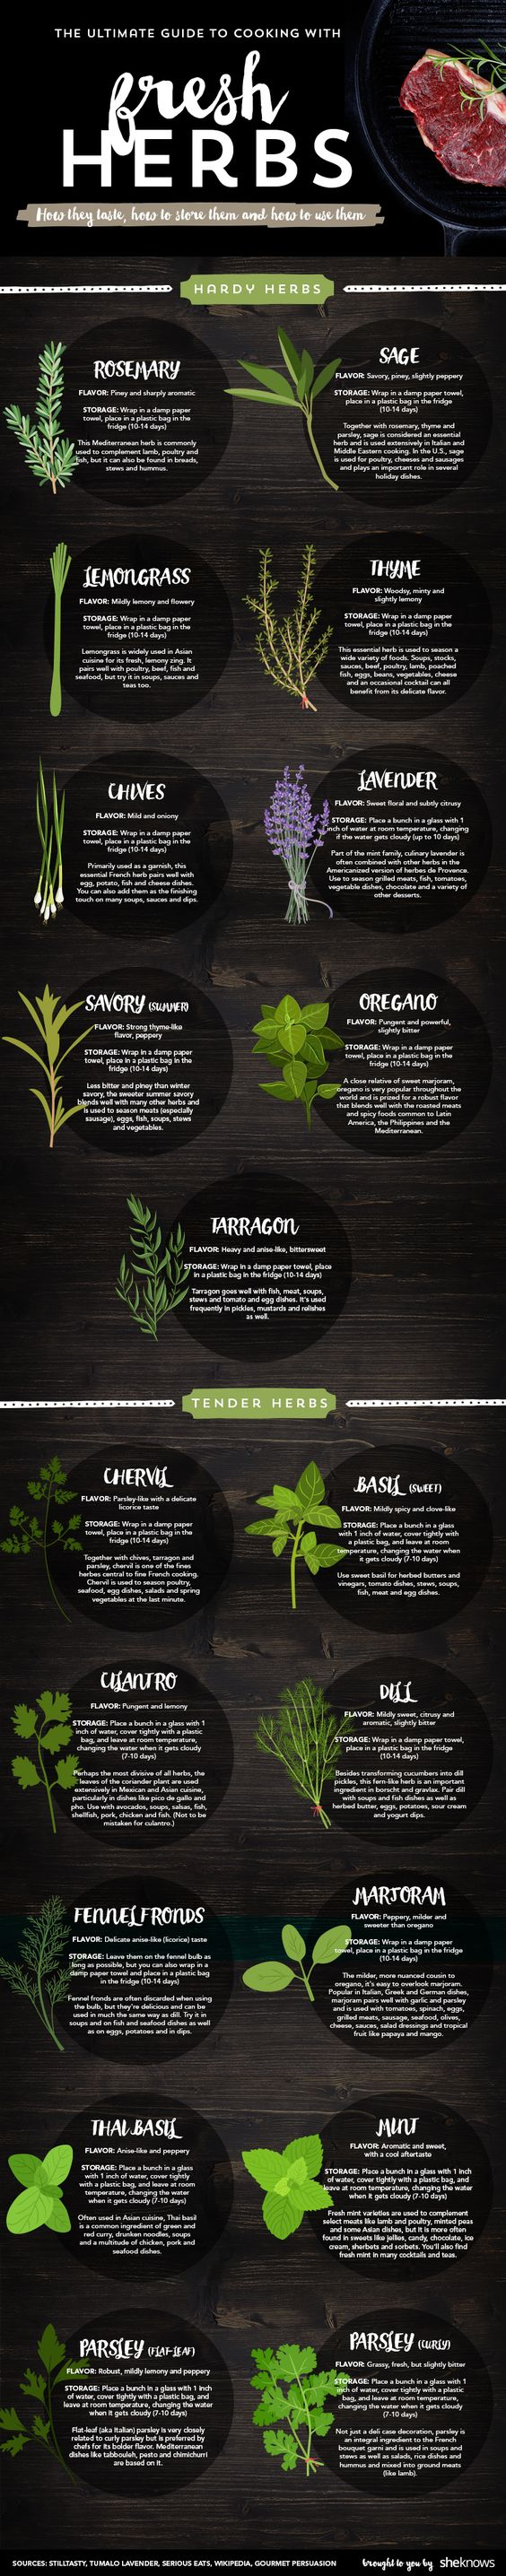 cooking with fresh herbs infographic: